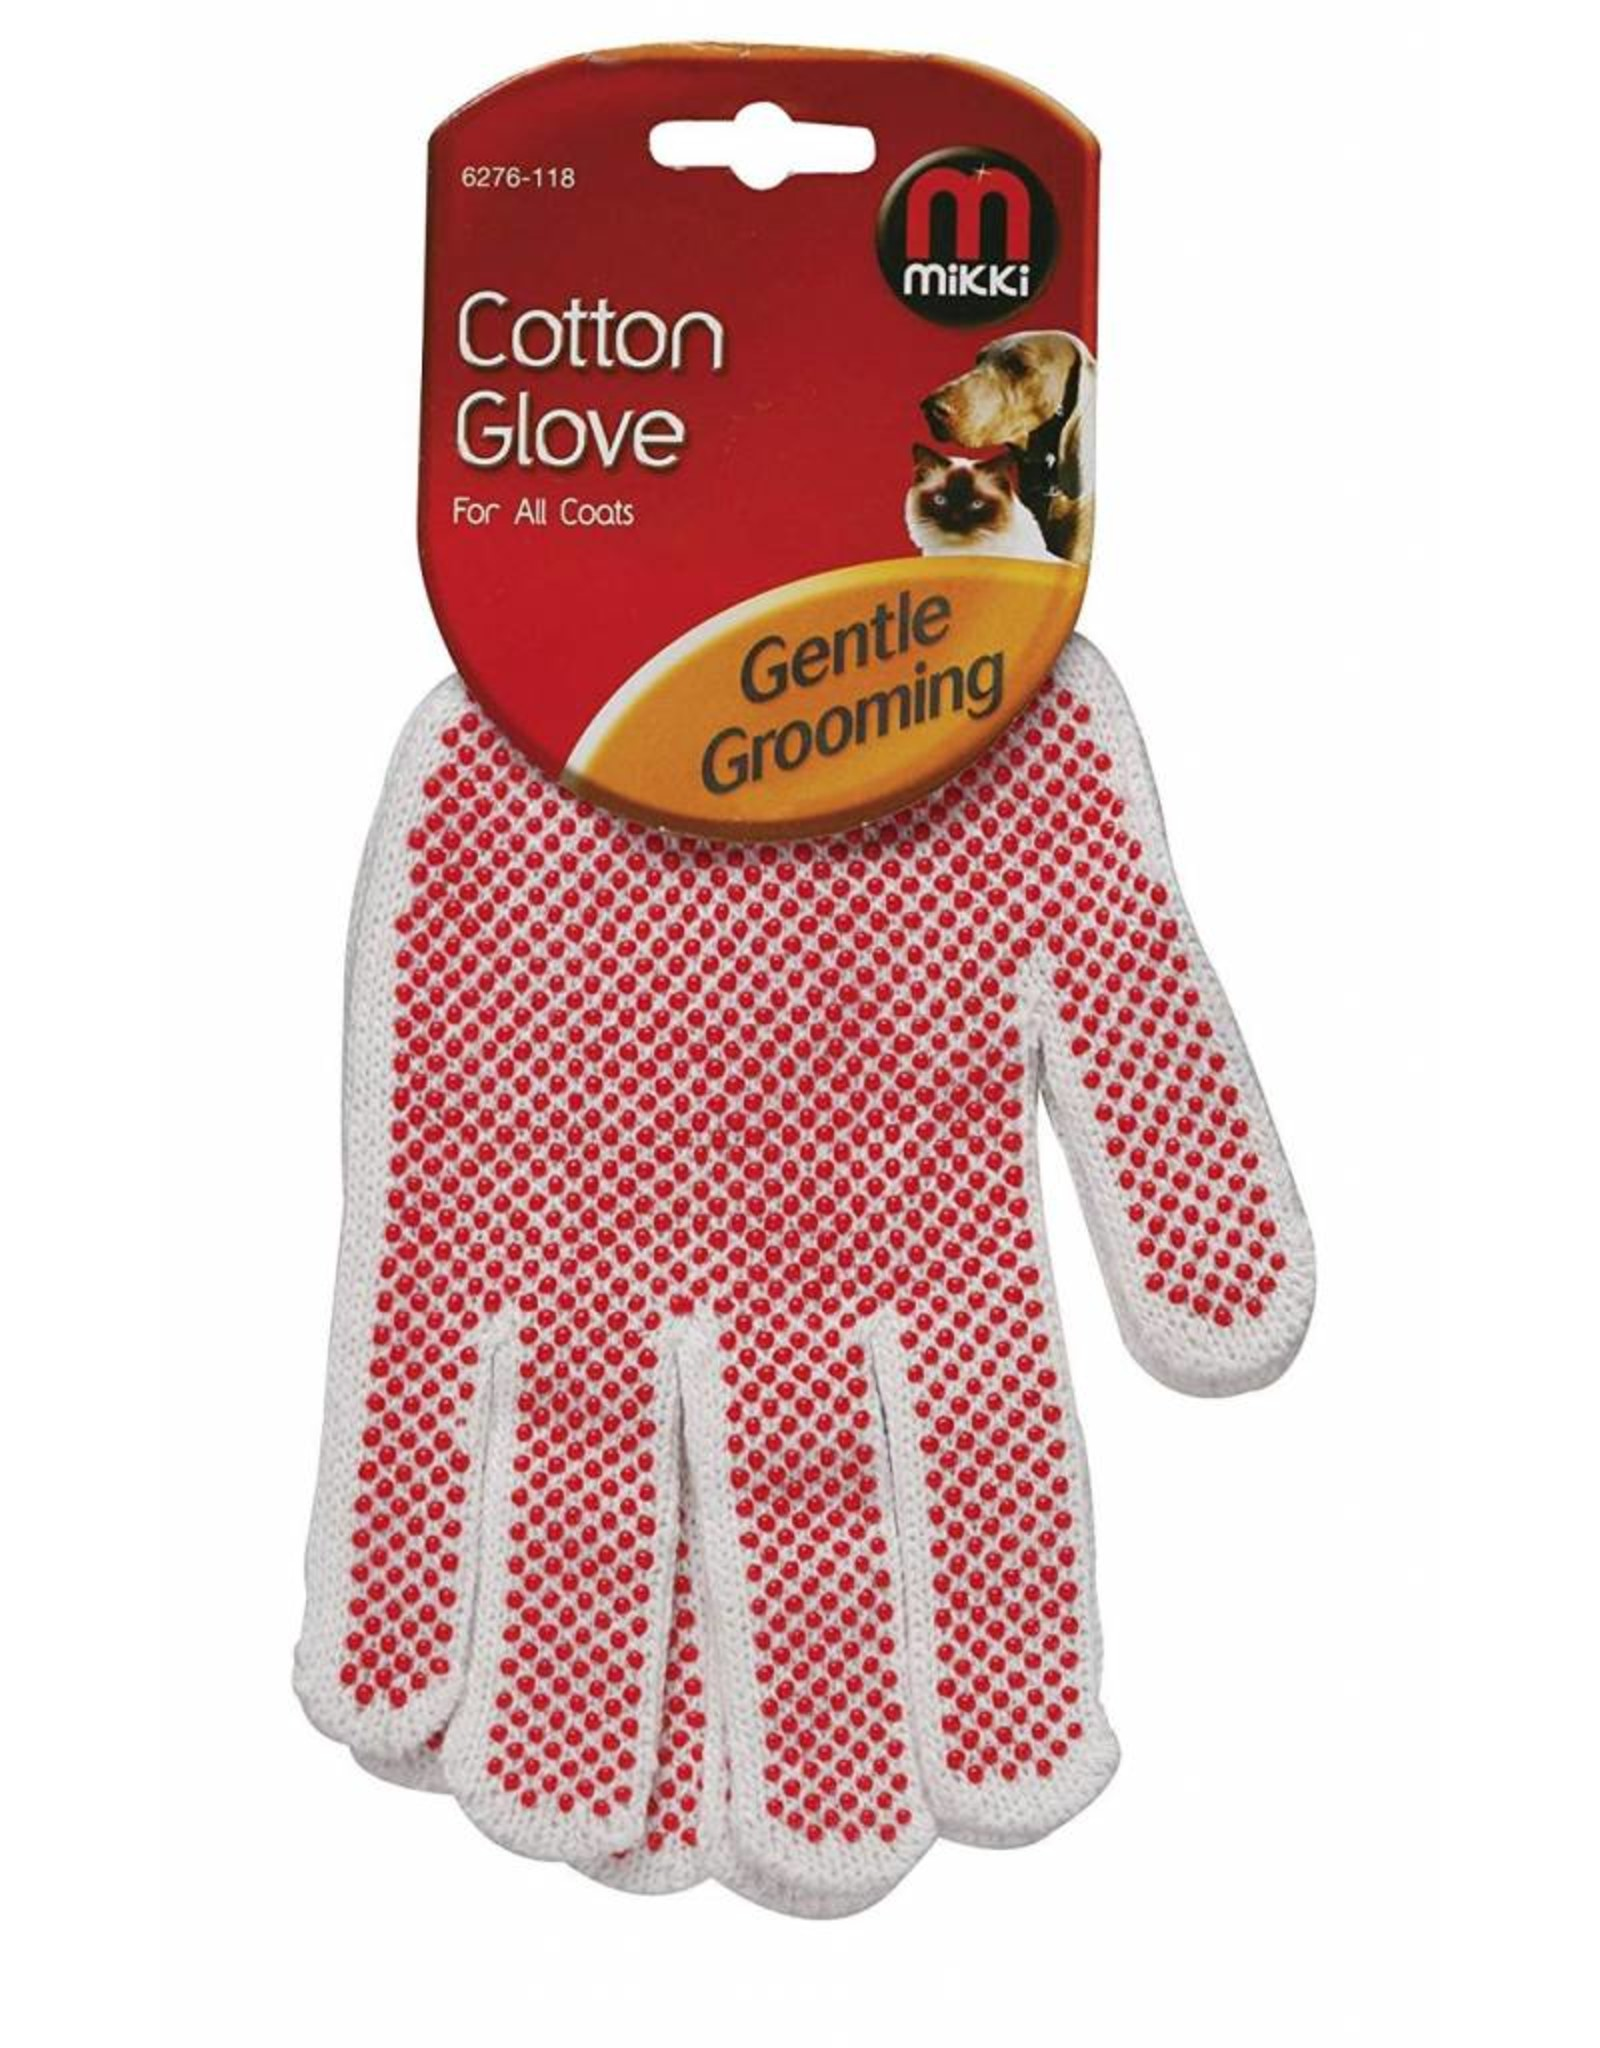 Mikki Cotton Glove for grooming all Coats